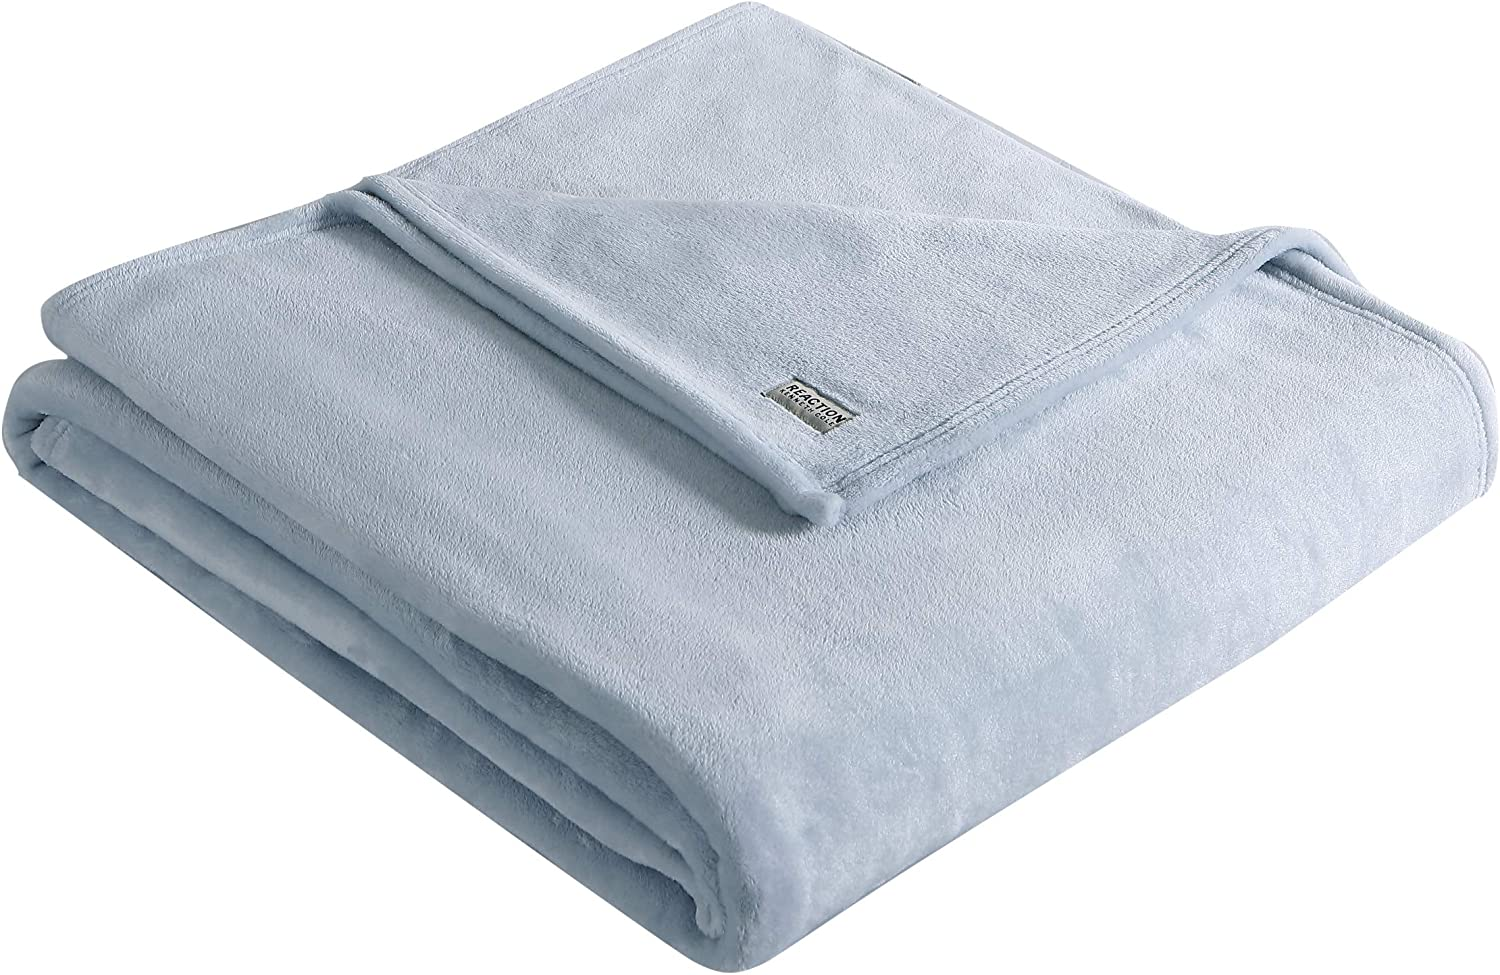 Kenneth Cole Reaction | Solid Collection | Blanket - Ultra-Plush Fleece - Luxuriously Warm Bedding - Machine Washable, Twin, Blue